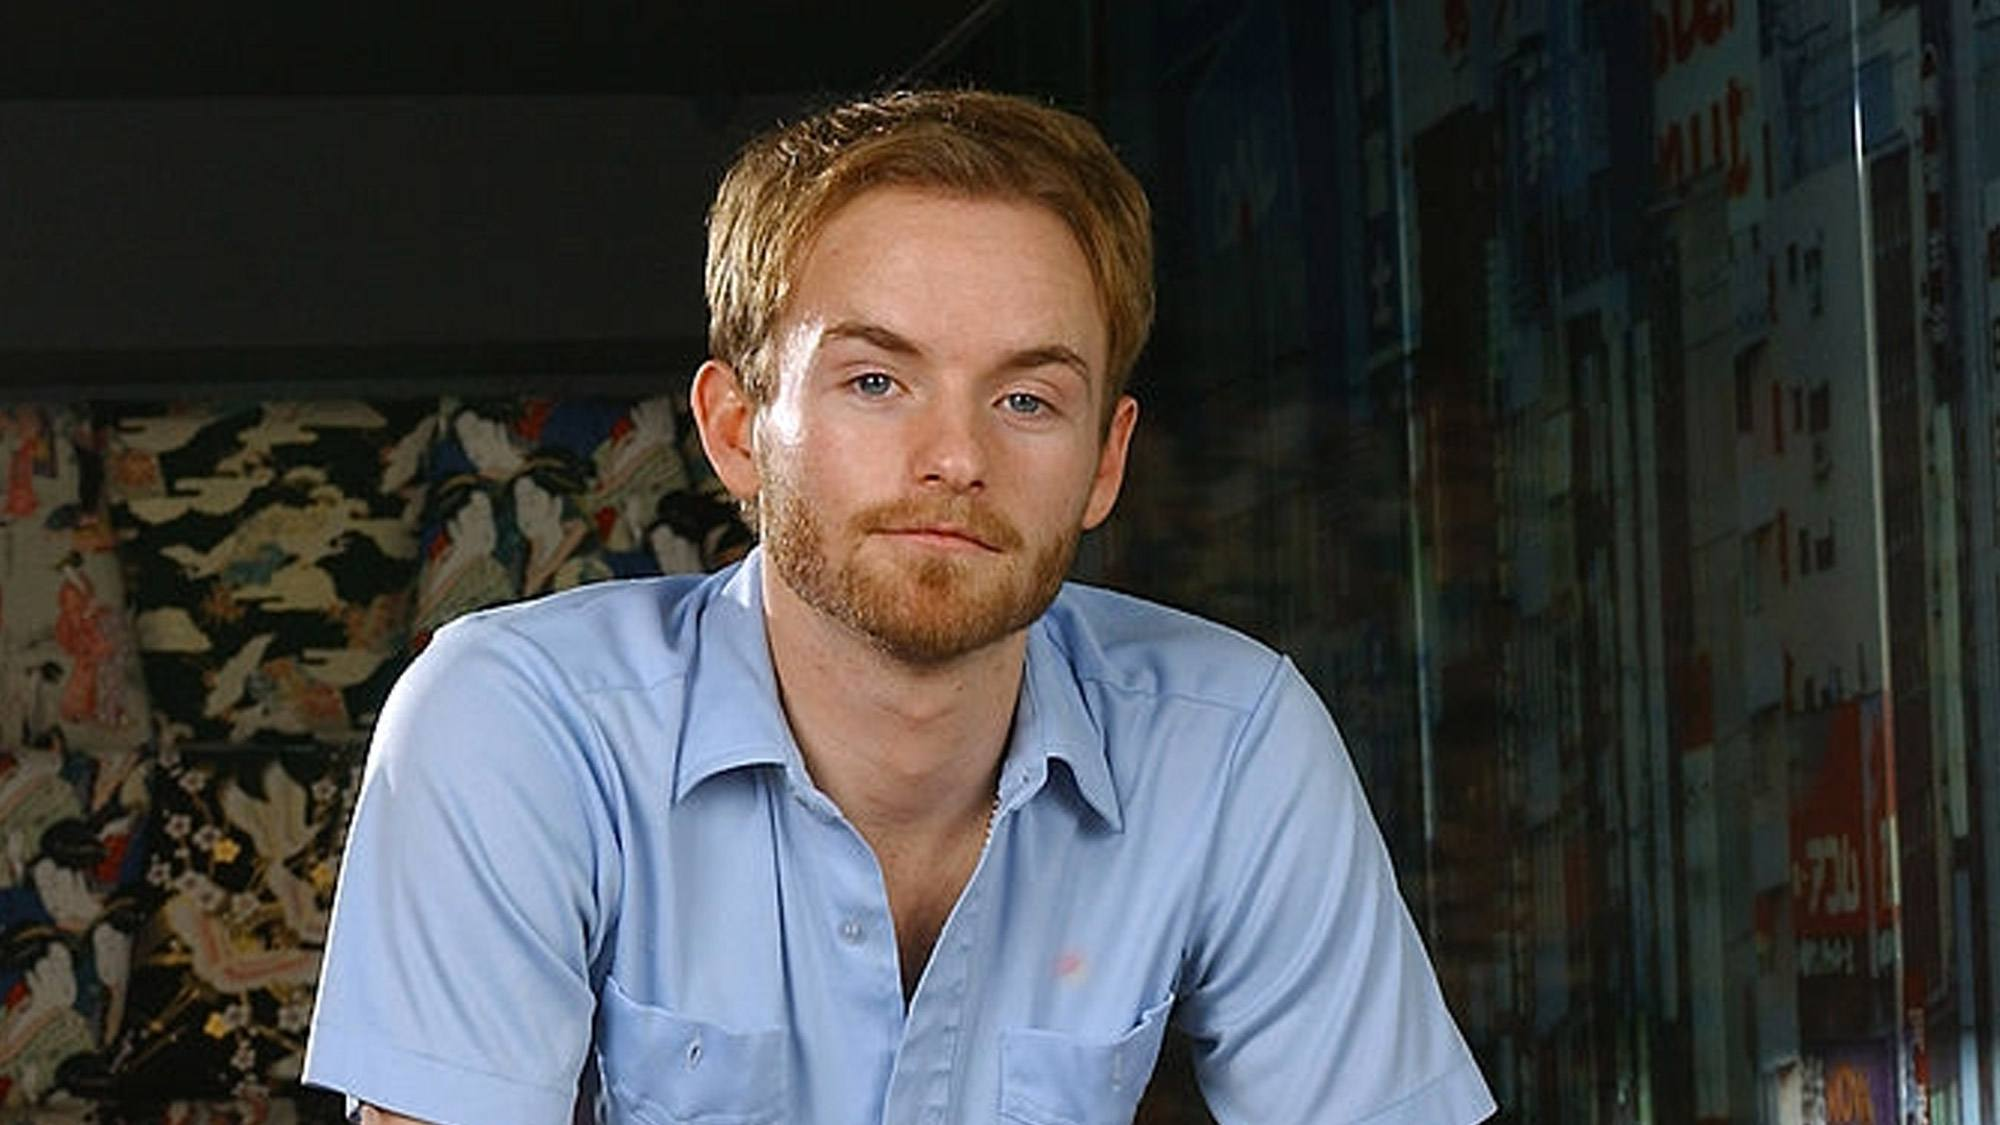 Christopher Kennedy Masterson scientologue ?